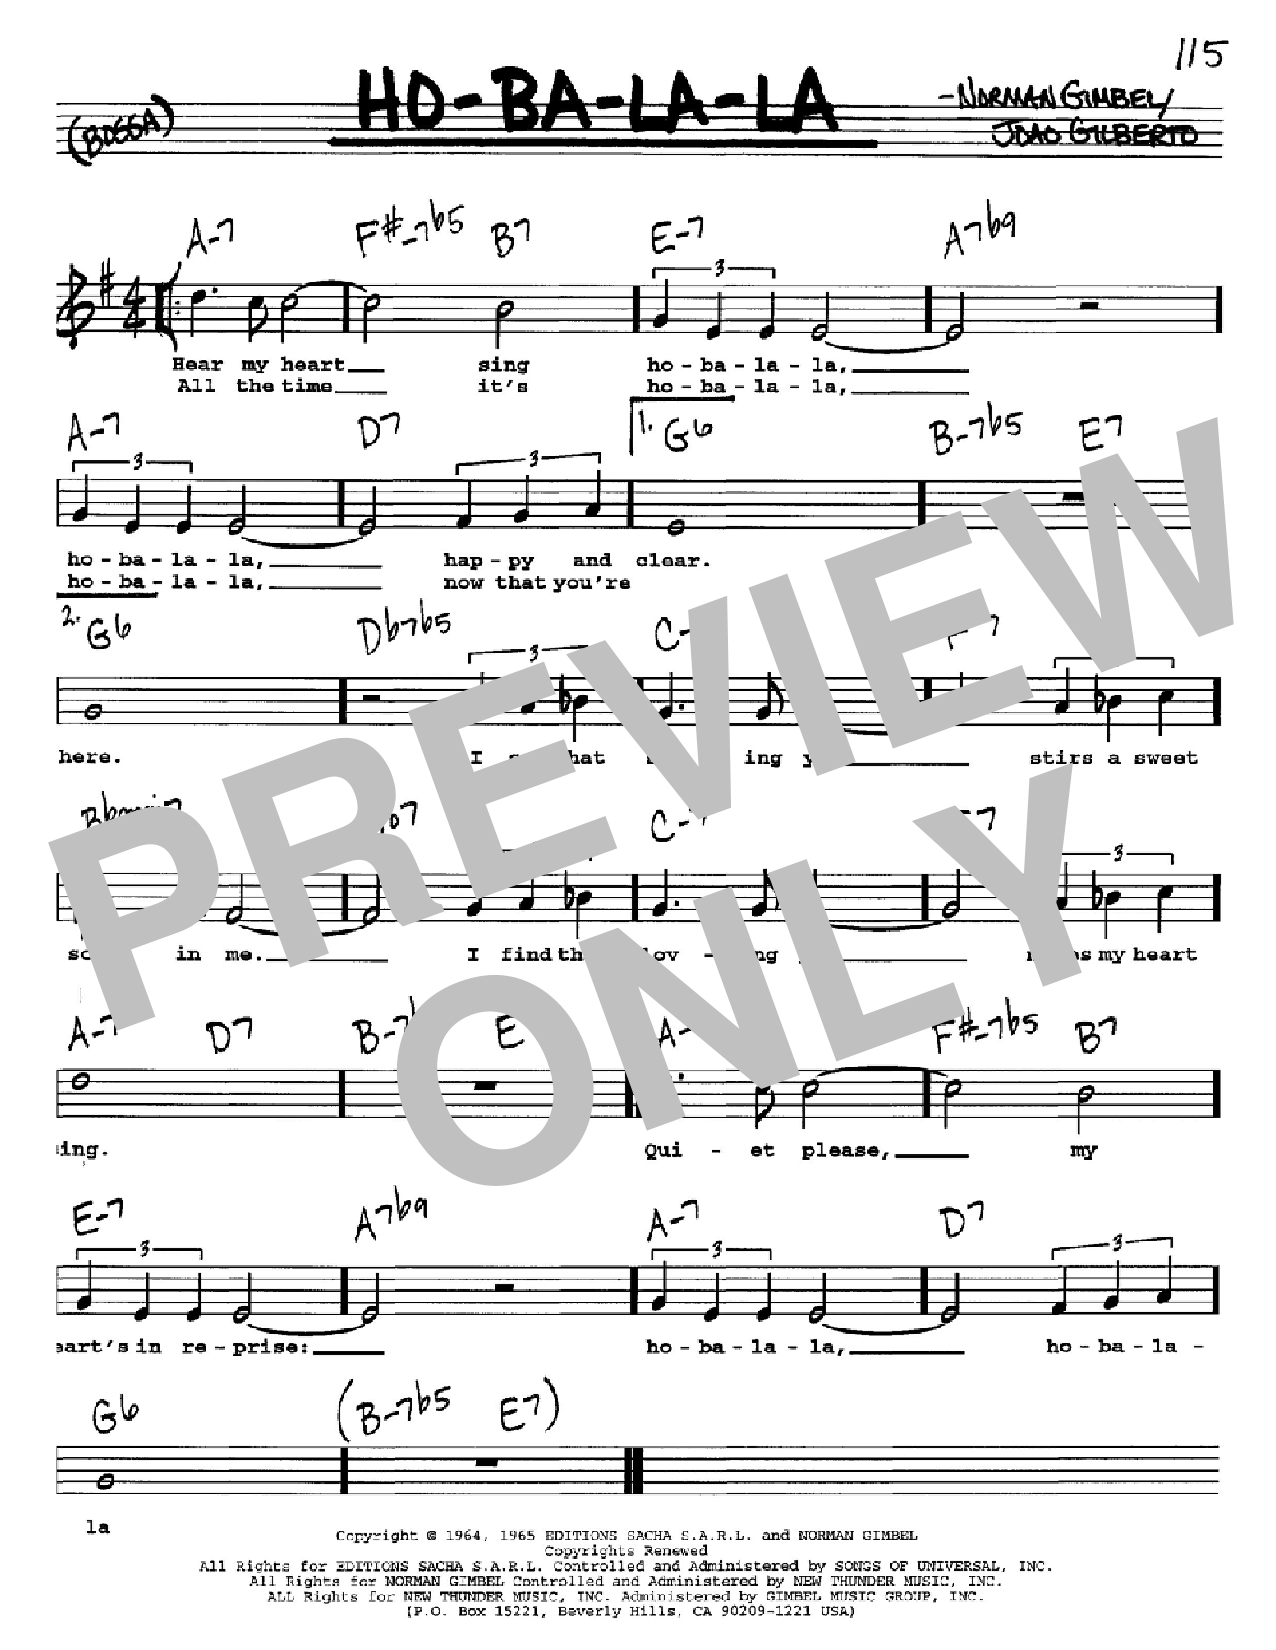 Ho-Ba-La-La Sheet Music